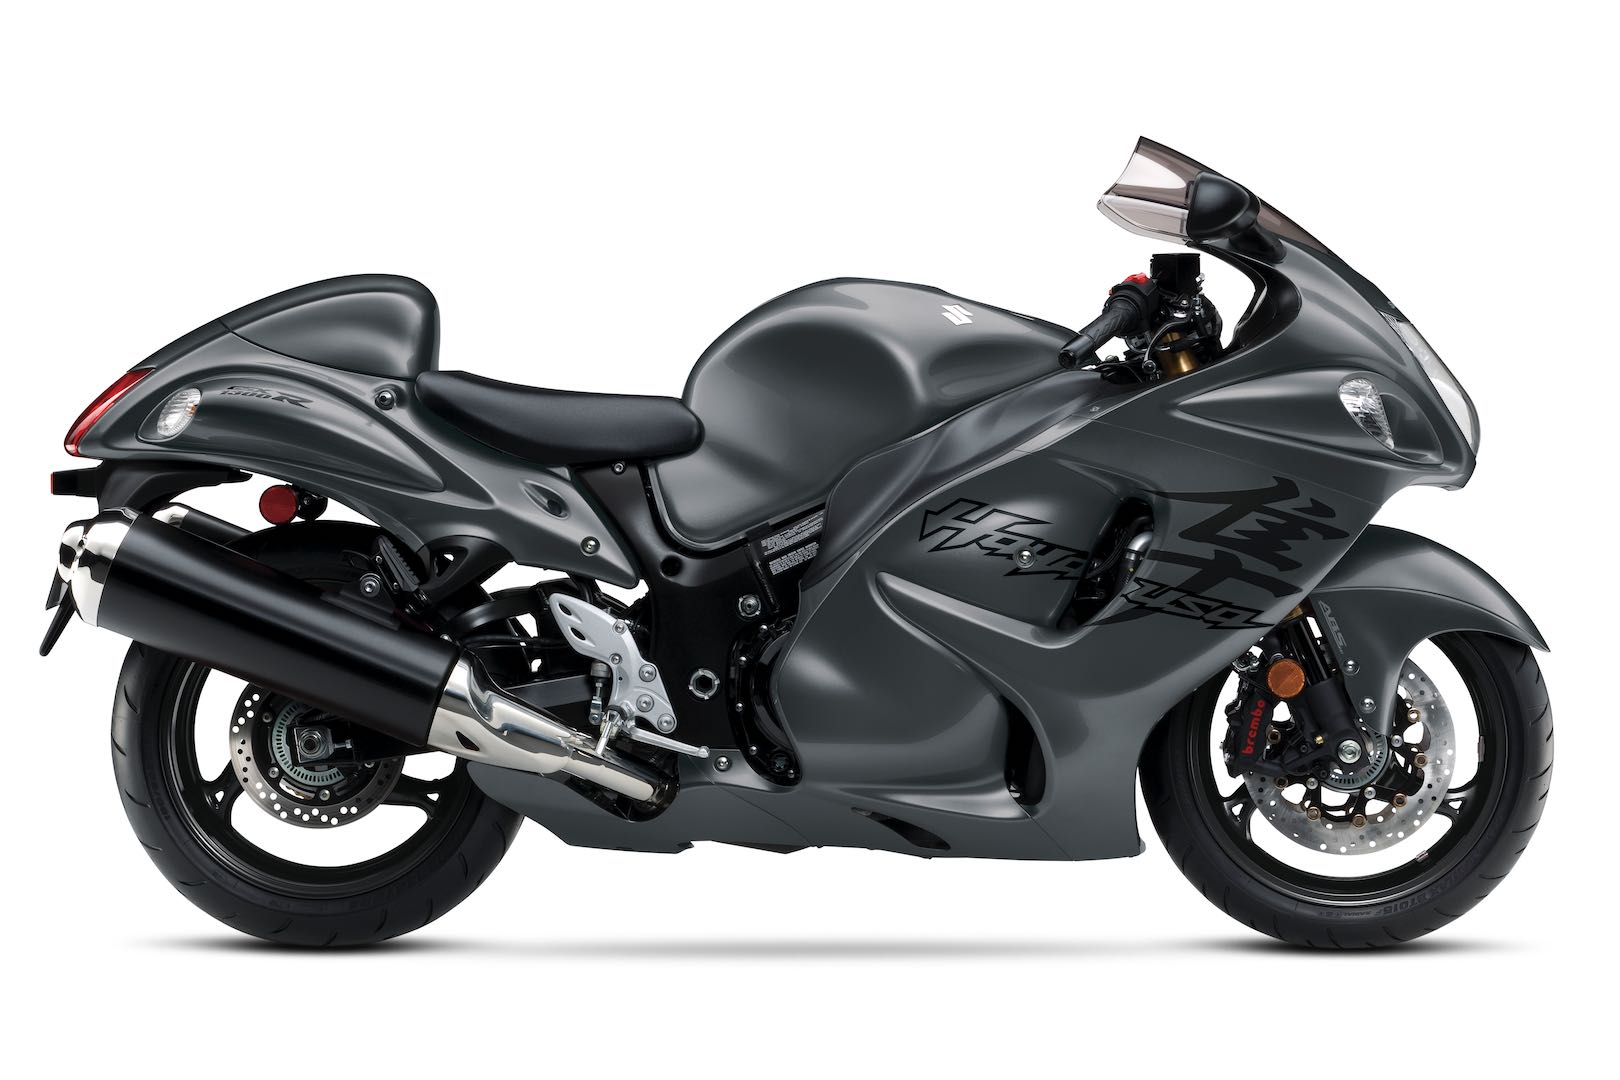 2020 Suzuki Hayabusa Buyer's Guide: Specs & Prices